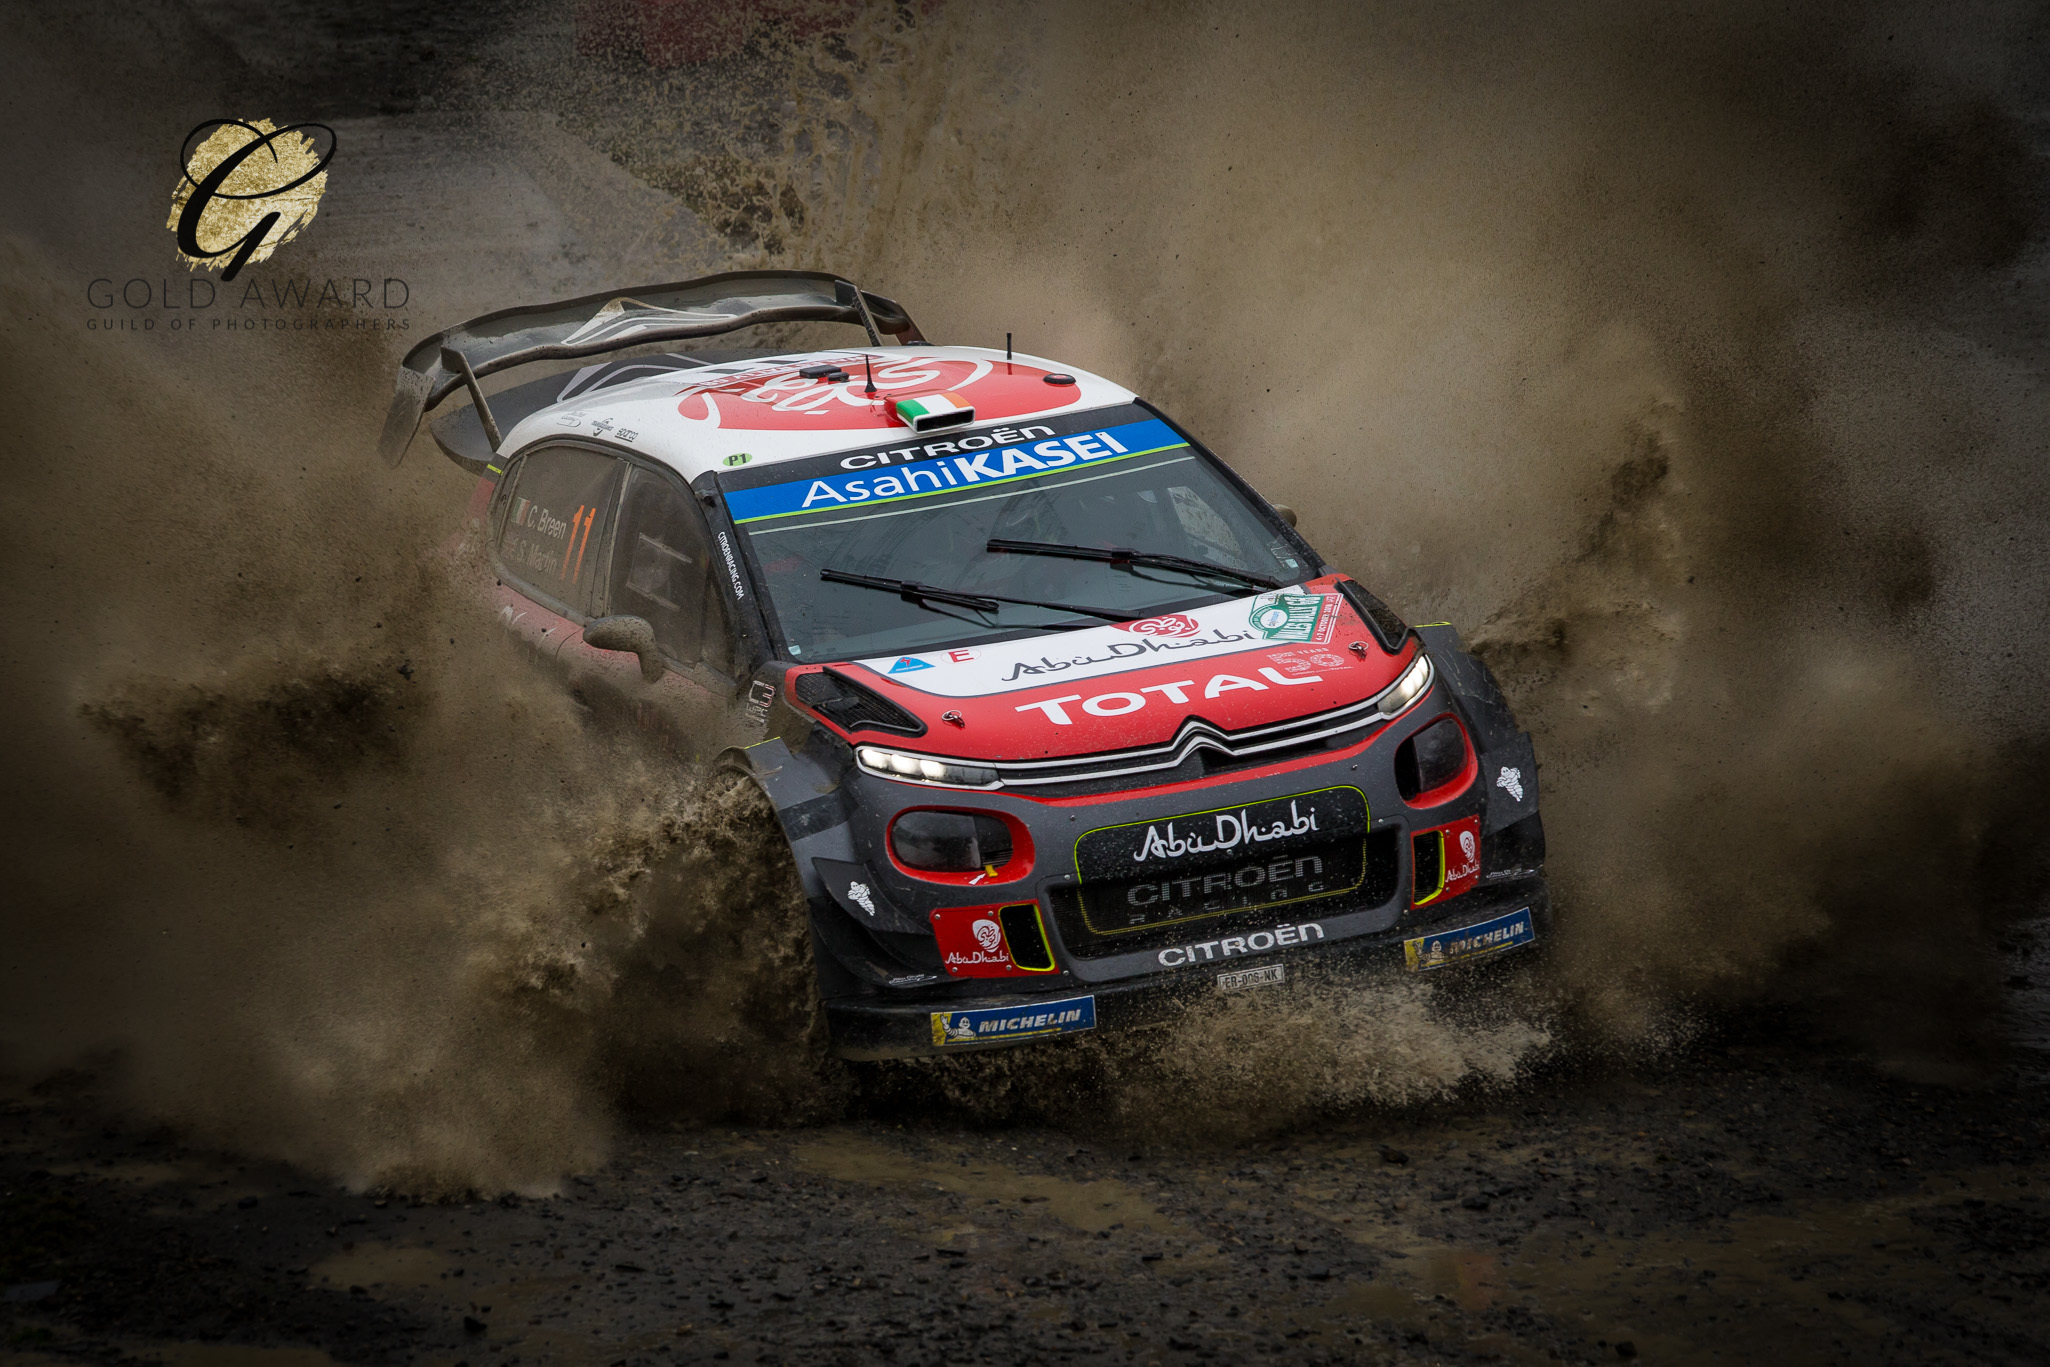 Llanidloes man's Rally GB photo wins Guild of Photographers competition